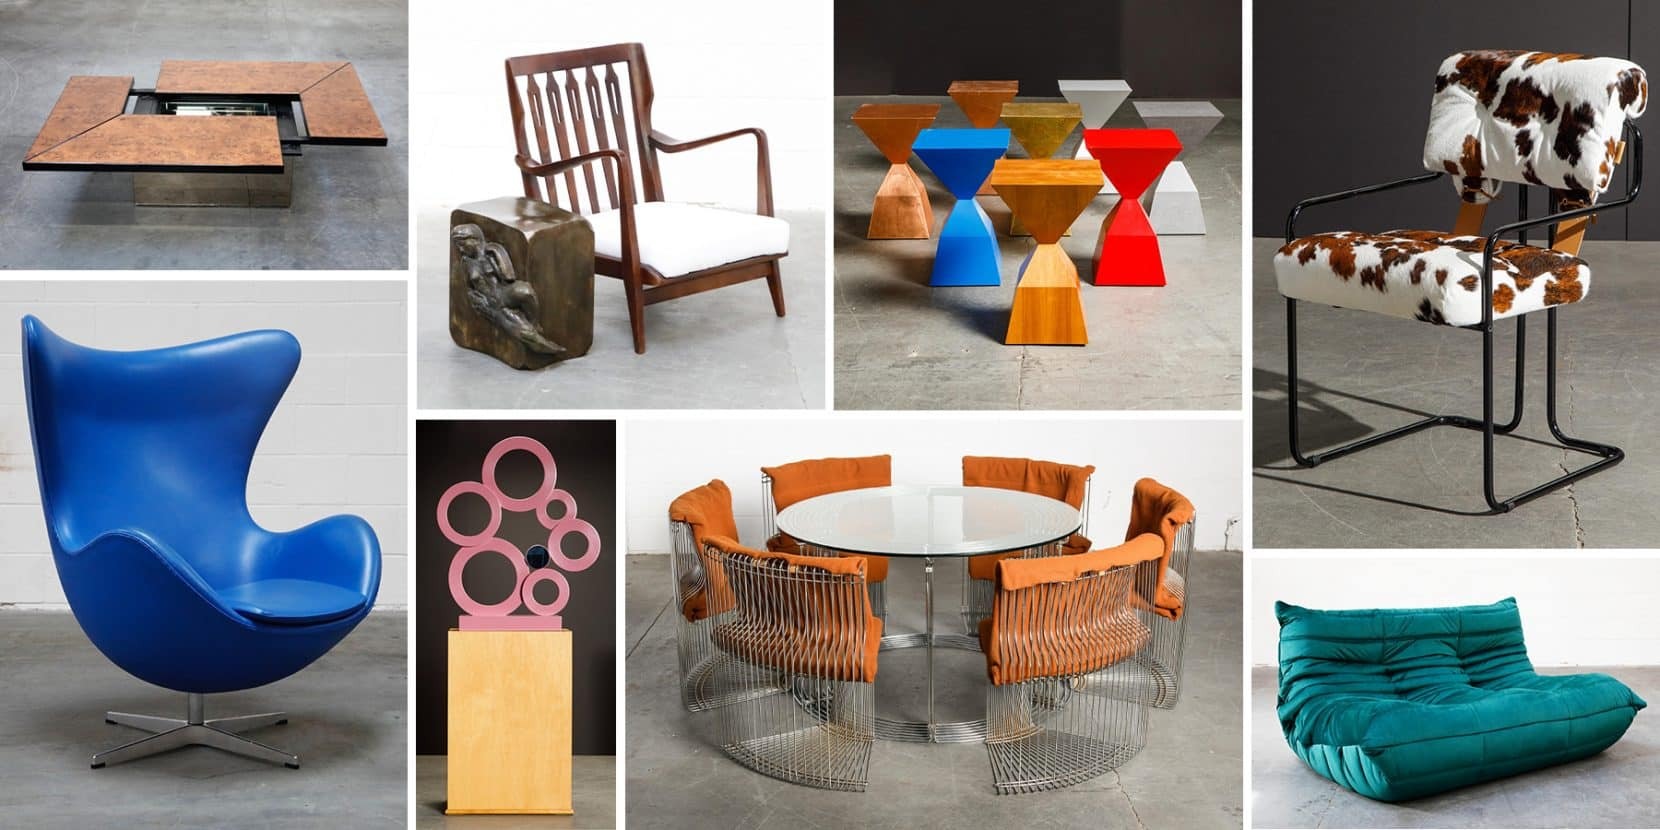 Pieces by, clockwise from top left, Paul Michel, Philip and Kelvin LaVerne, Stewart MacDougall (tables and sculpture), Guido Faleschini, Michel Ducaroy, Verner Panton and Arne Jacobson, offered by Automaton